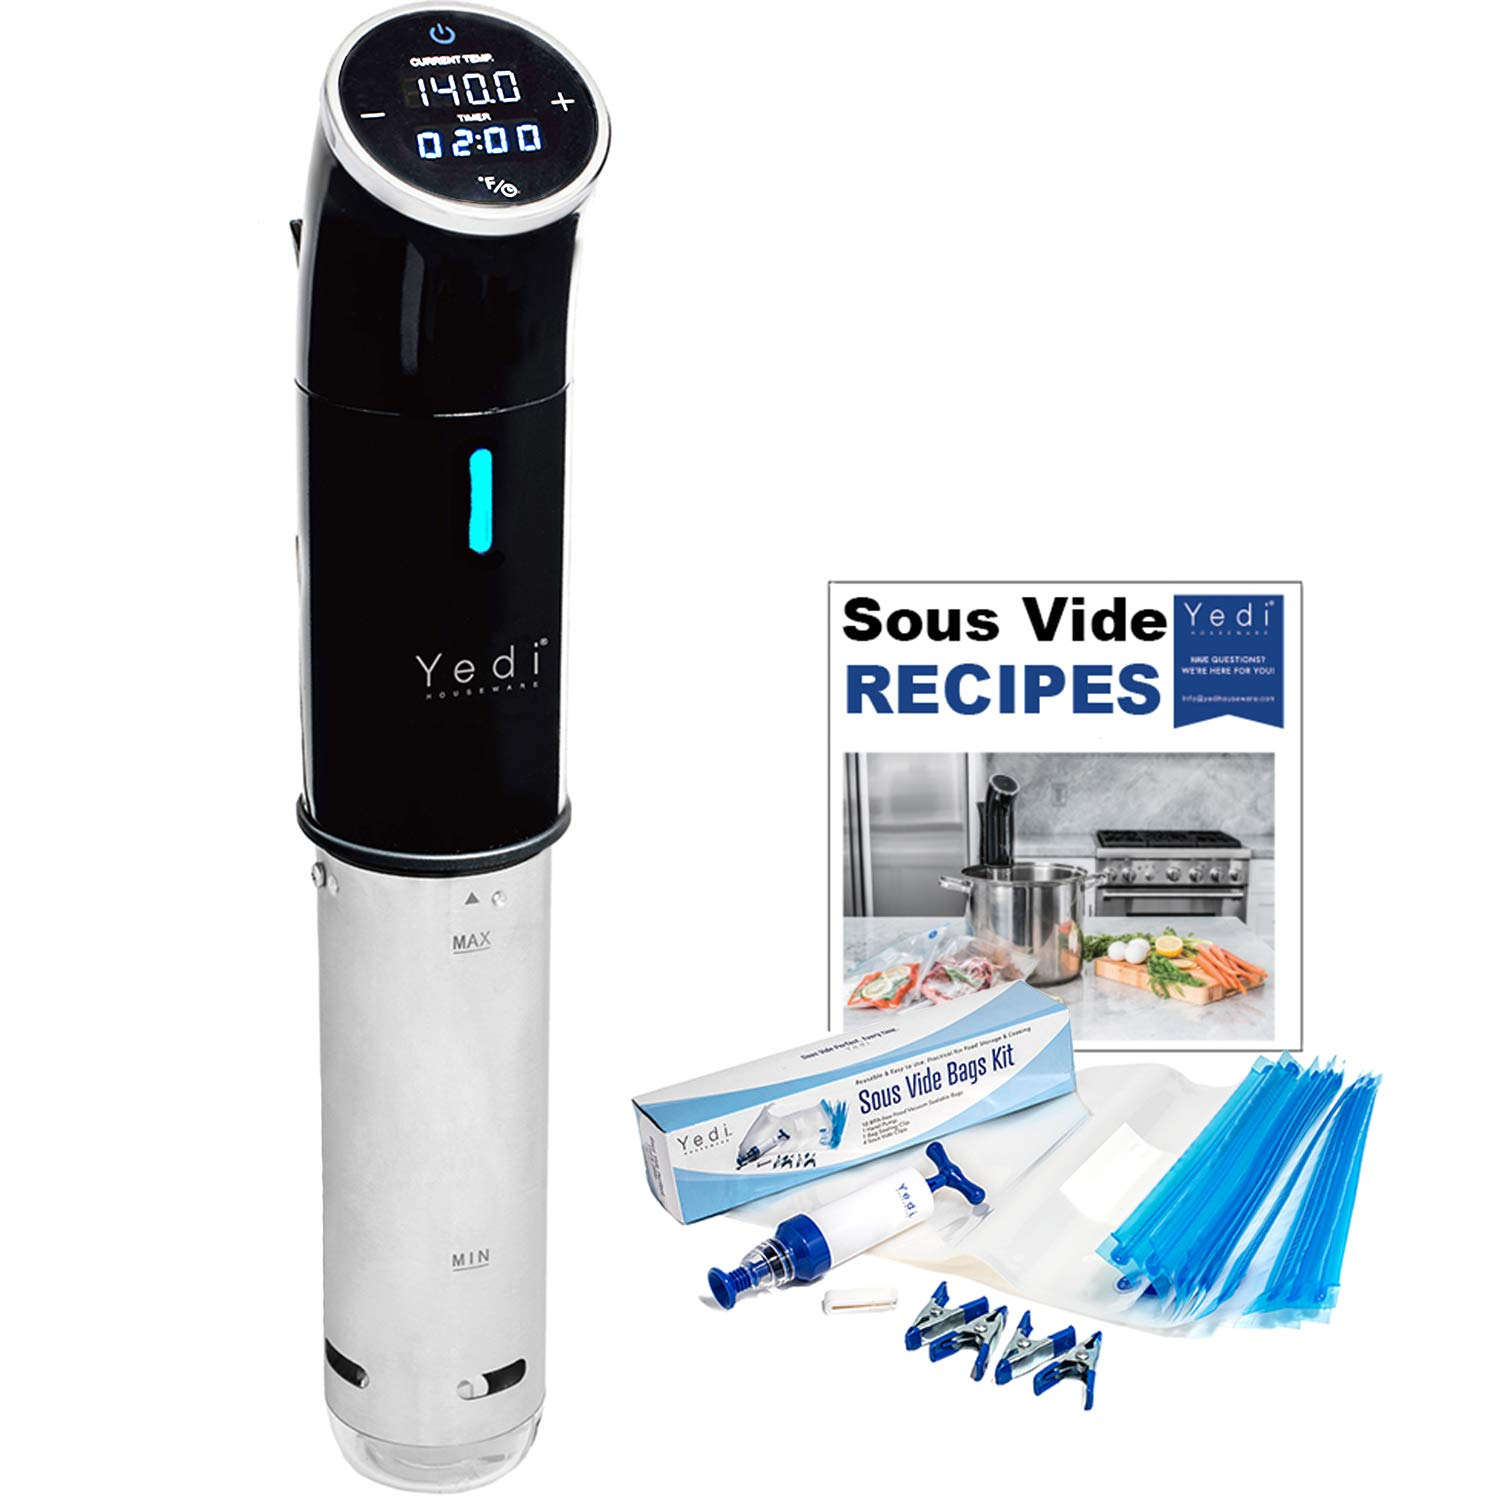 Sous Vide, with Deluxe Accessory Kit & Endless Recipes by Yedi Houseware